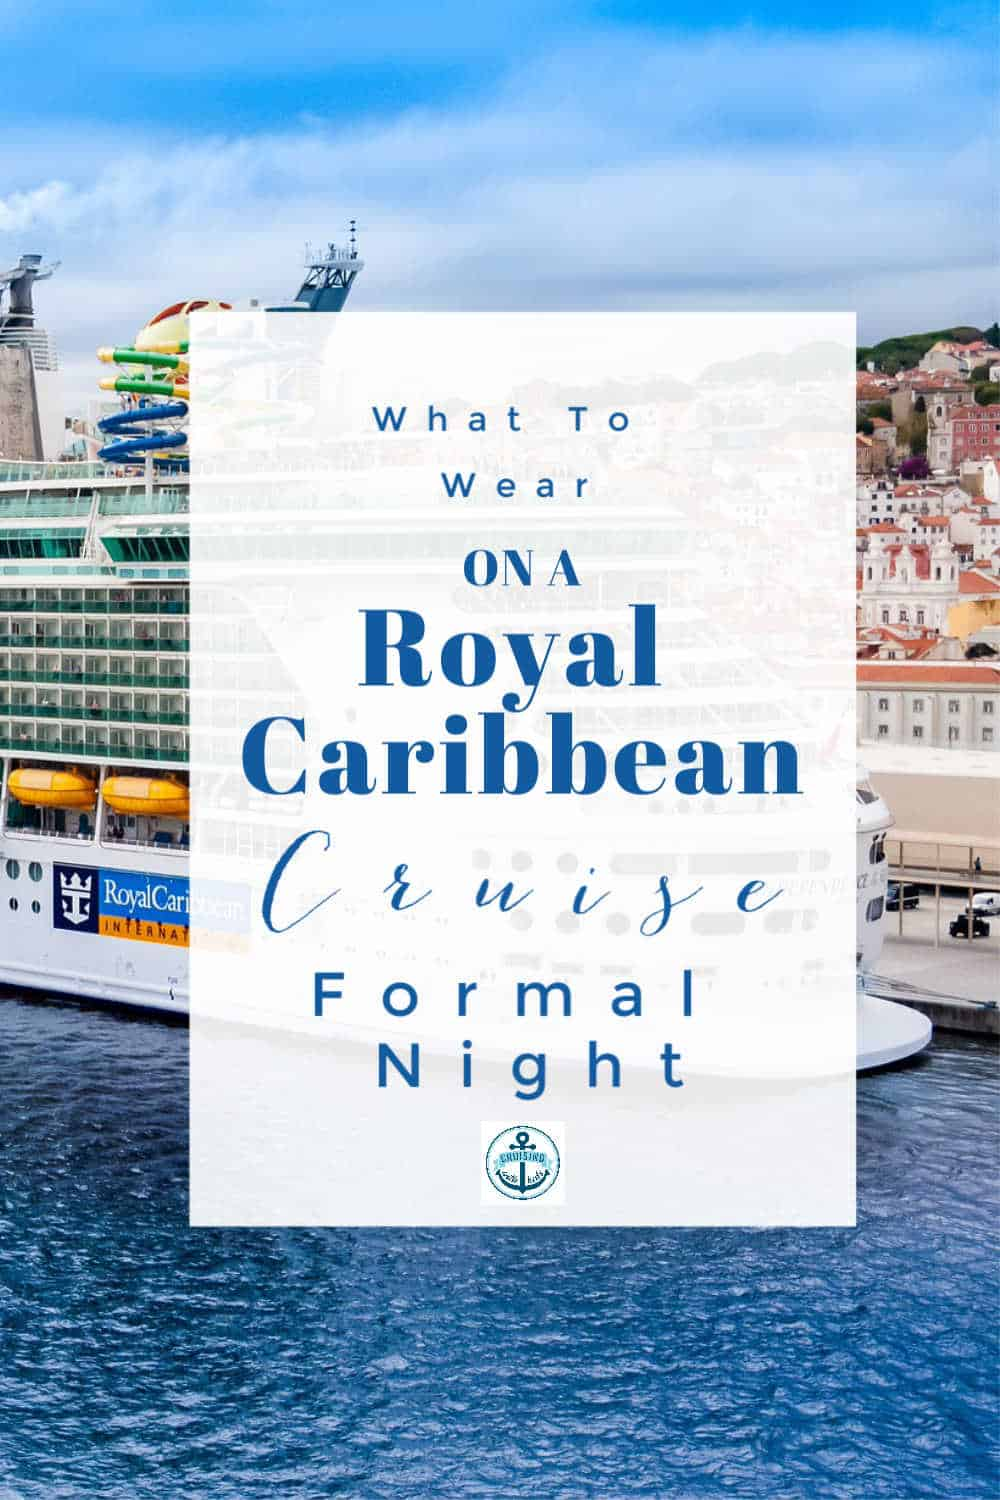 Royal Caribbean Formal Night is a wonderful chance to get dressed up and wear your smartest clothes, what are the rules, what should you and your family wear on cruise formal night.